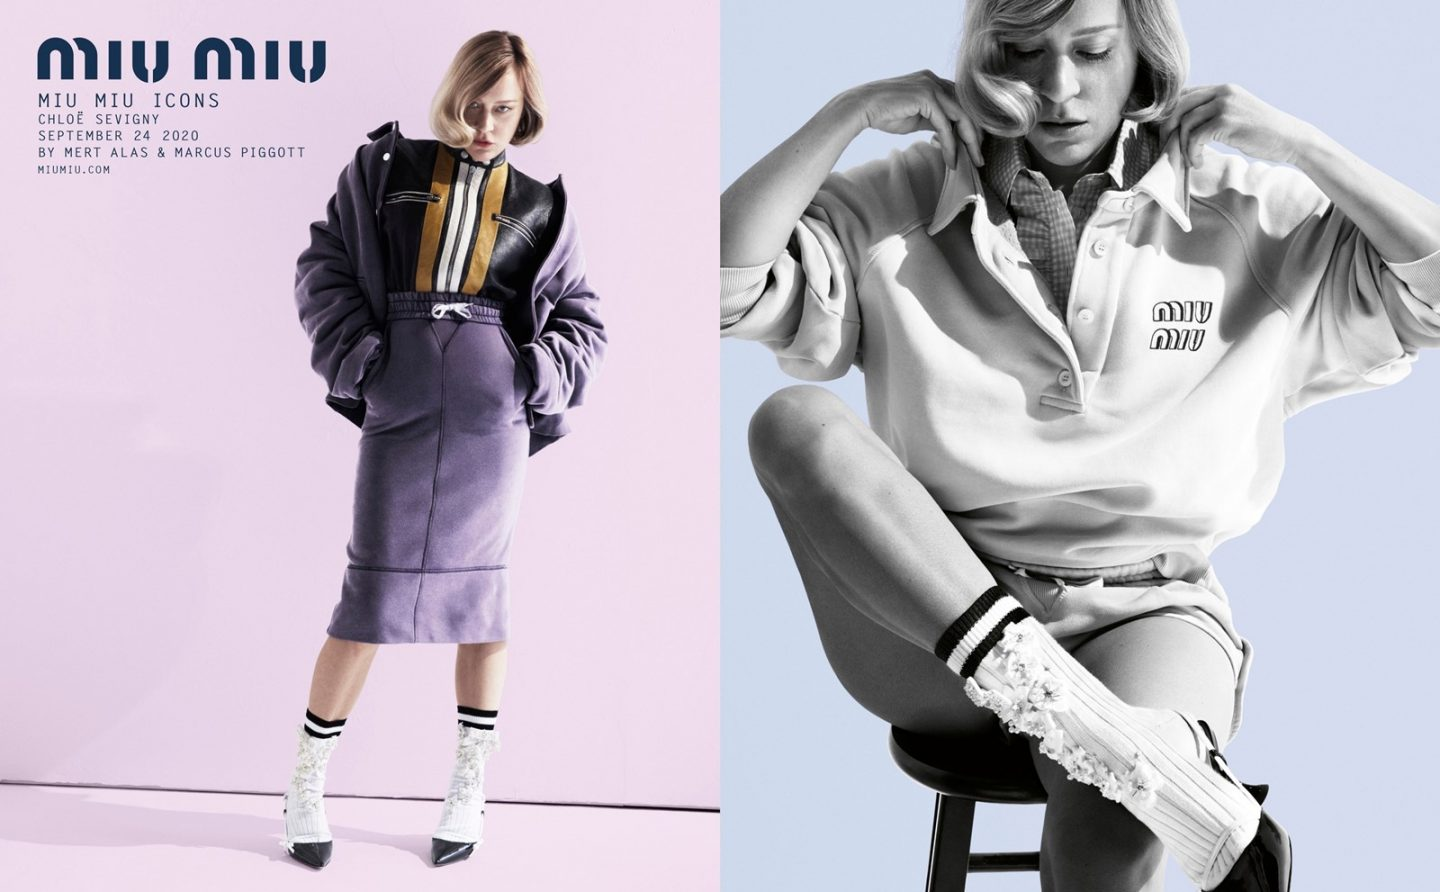 Chloe Sevigny for Miu Miu icons